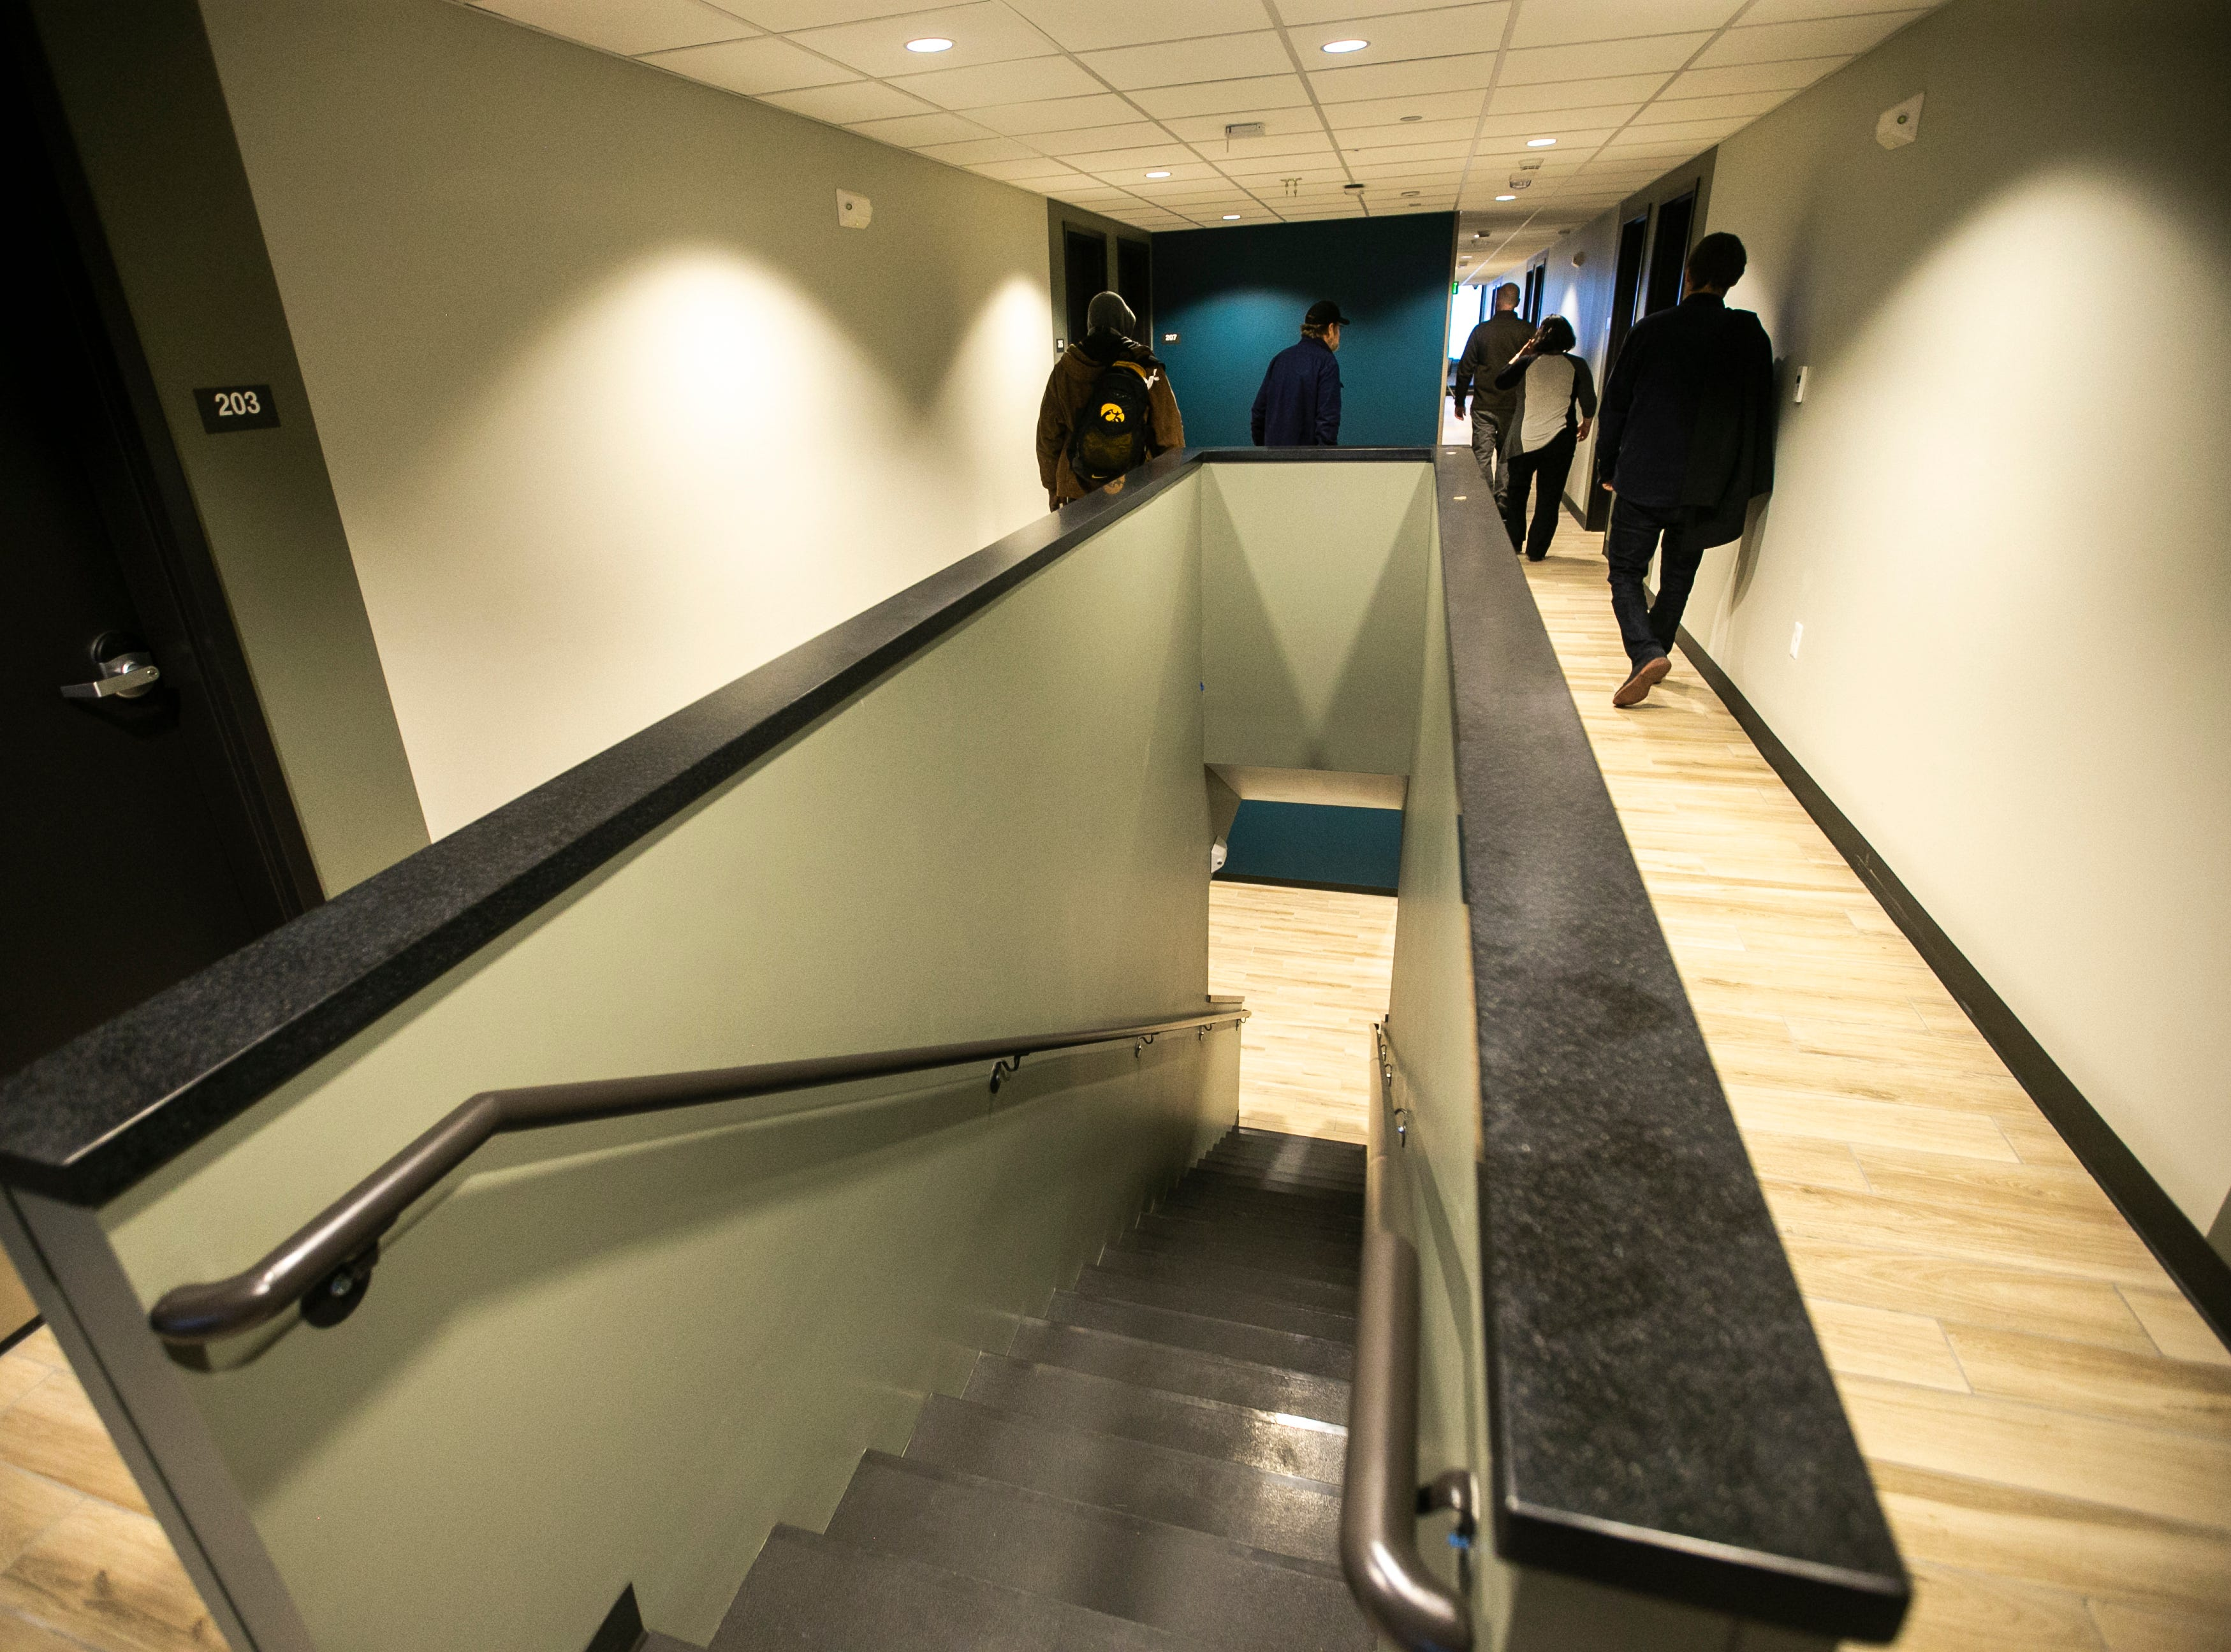 A staircase leading to the first floor of the newly completed homeless housing apartment complex is seen on Wednesday, Jan. 16, 2019, at Cross Park Place in Iowa City, Iowa. The complex has 24 individual units, offers free laundry and has an elevator.